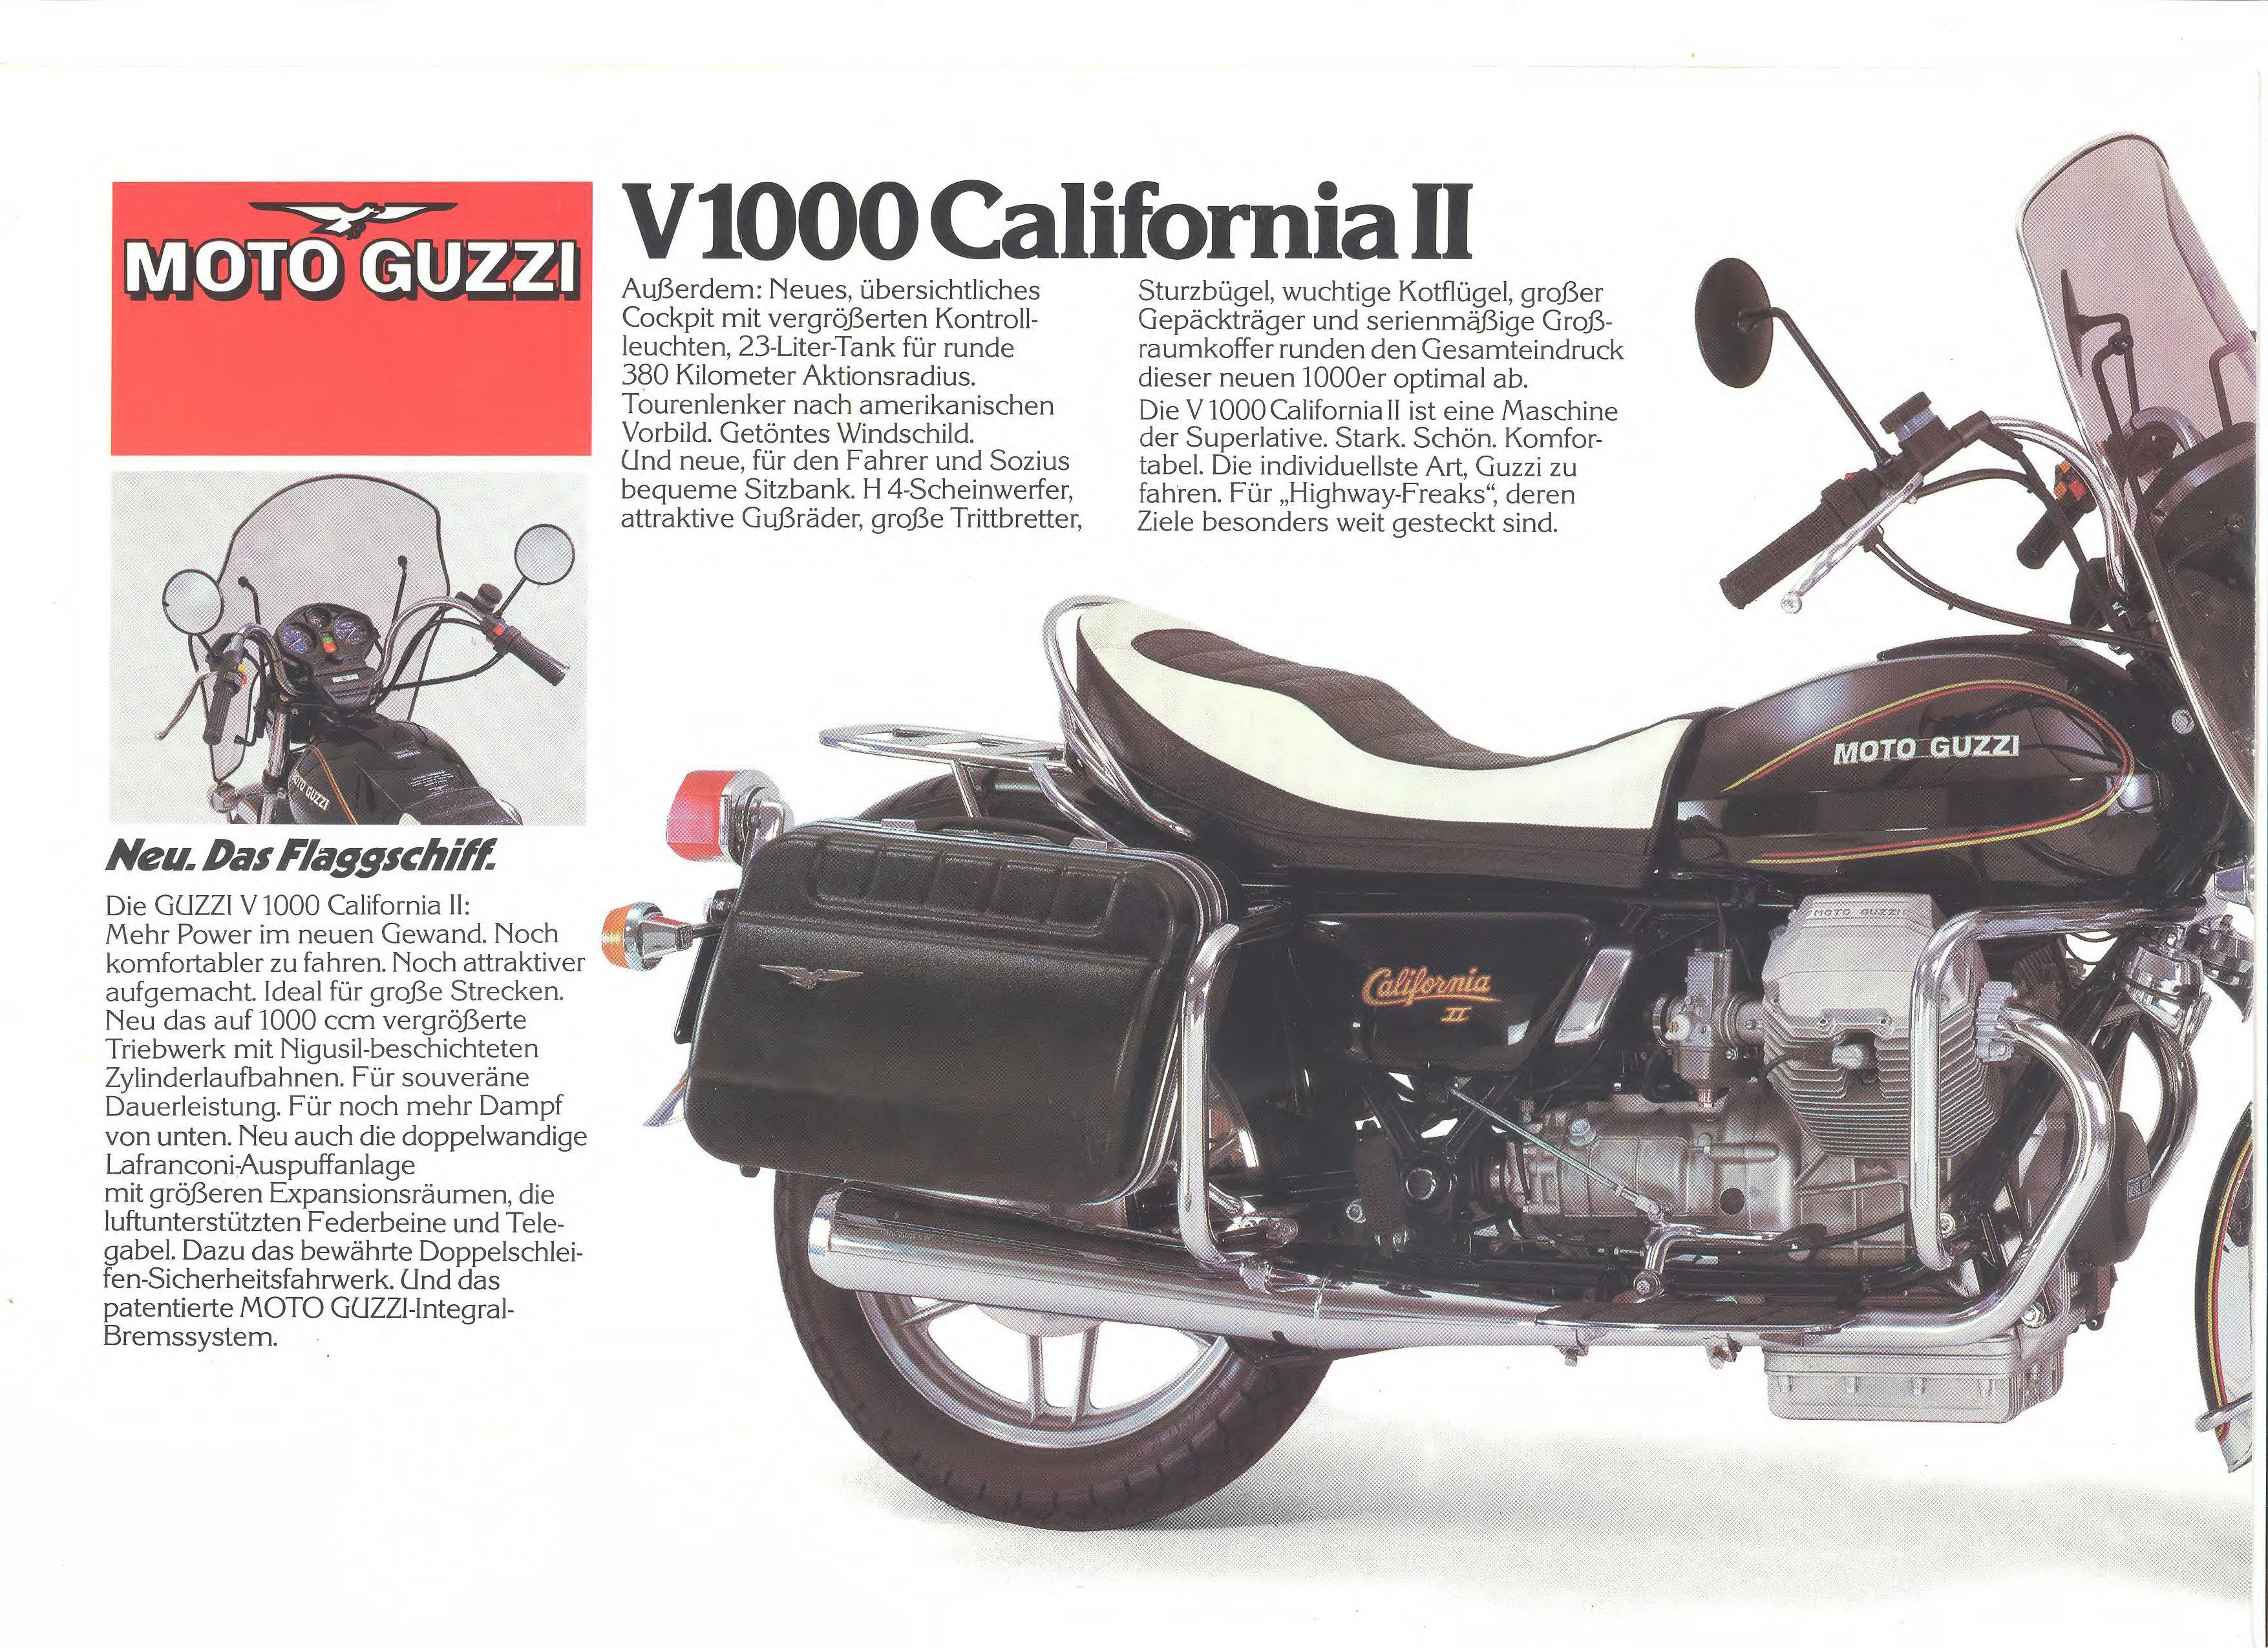 Moto Guzzi factory brochure: California II - 850 T5